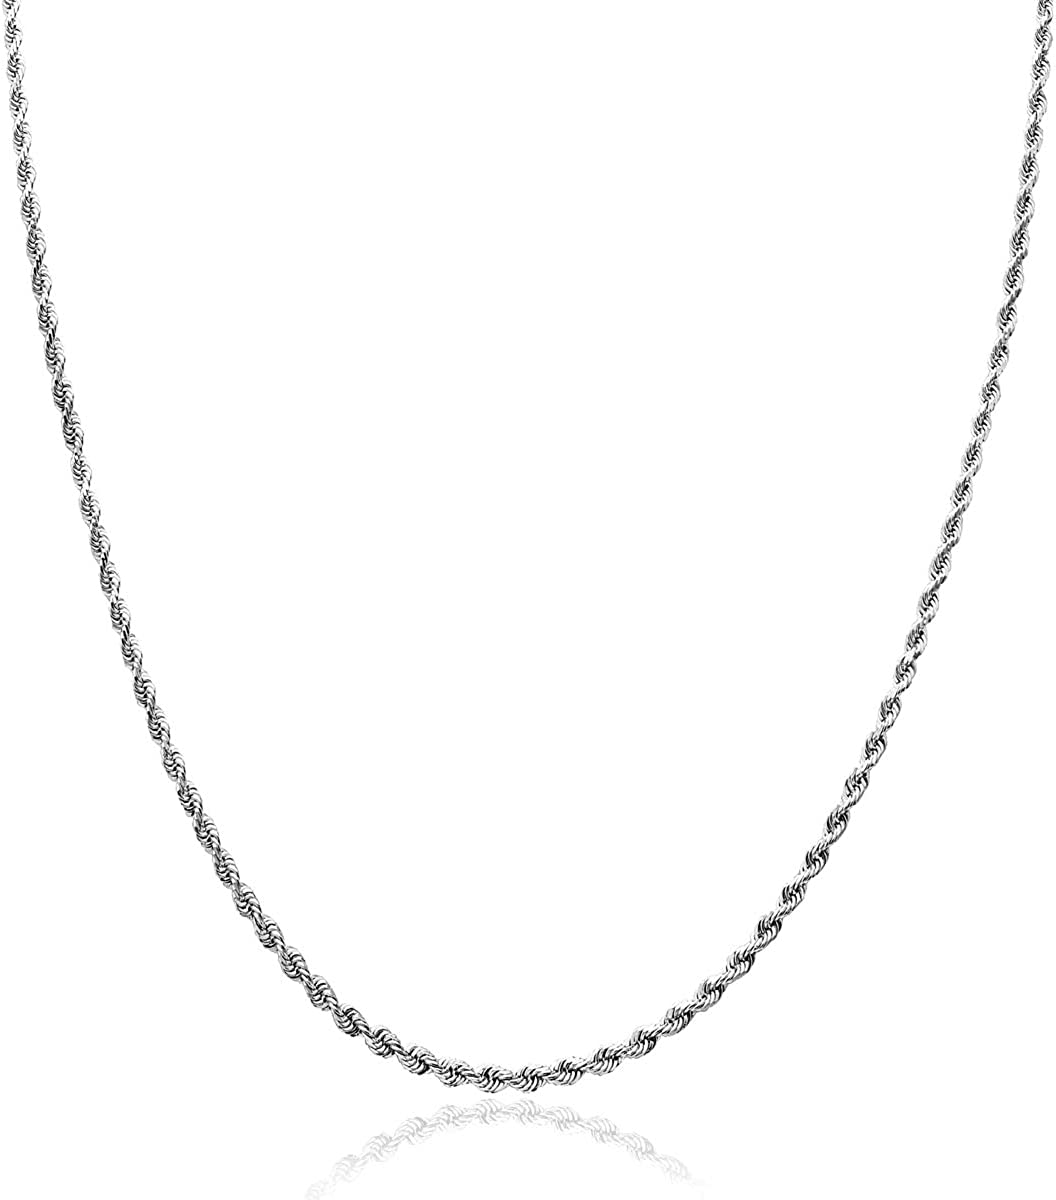 Honolulu Jewelry Company 14K Solid Necklac 1.5mm Chain Max 48% OFF Fresno Mall Rope Gold